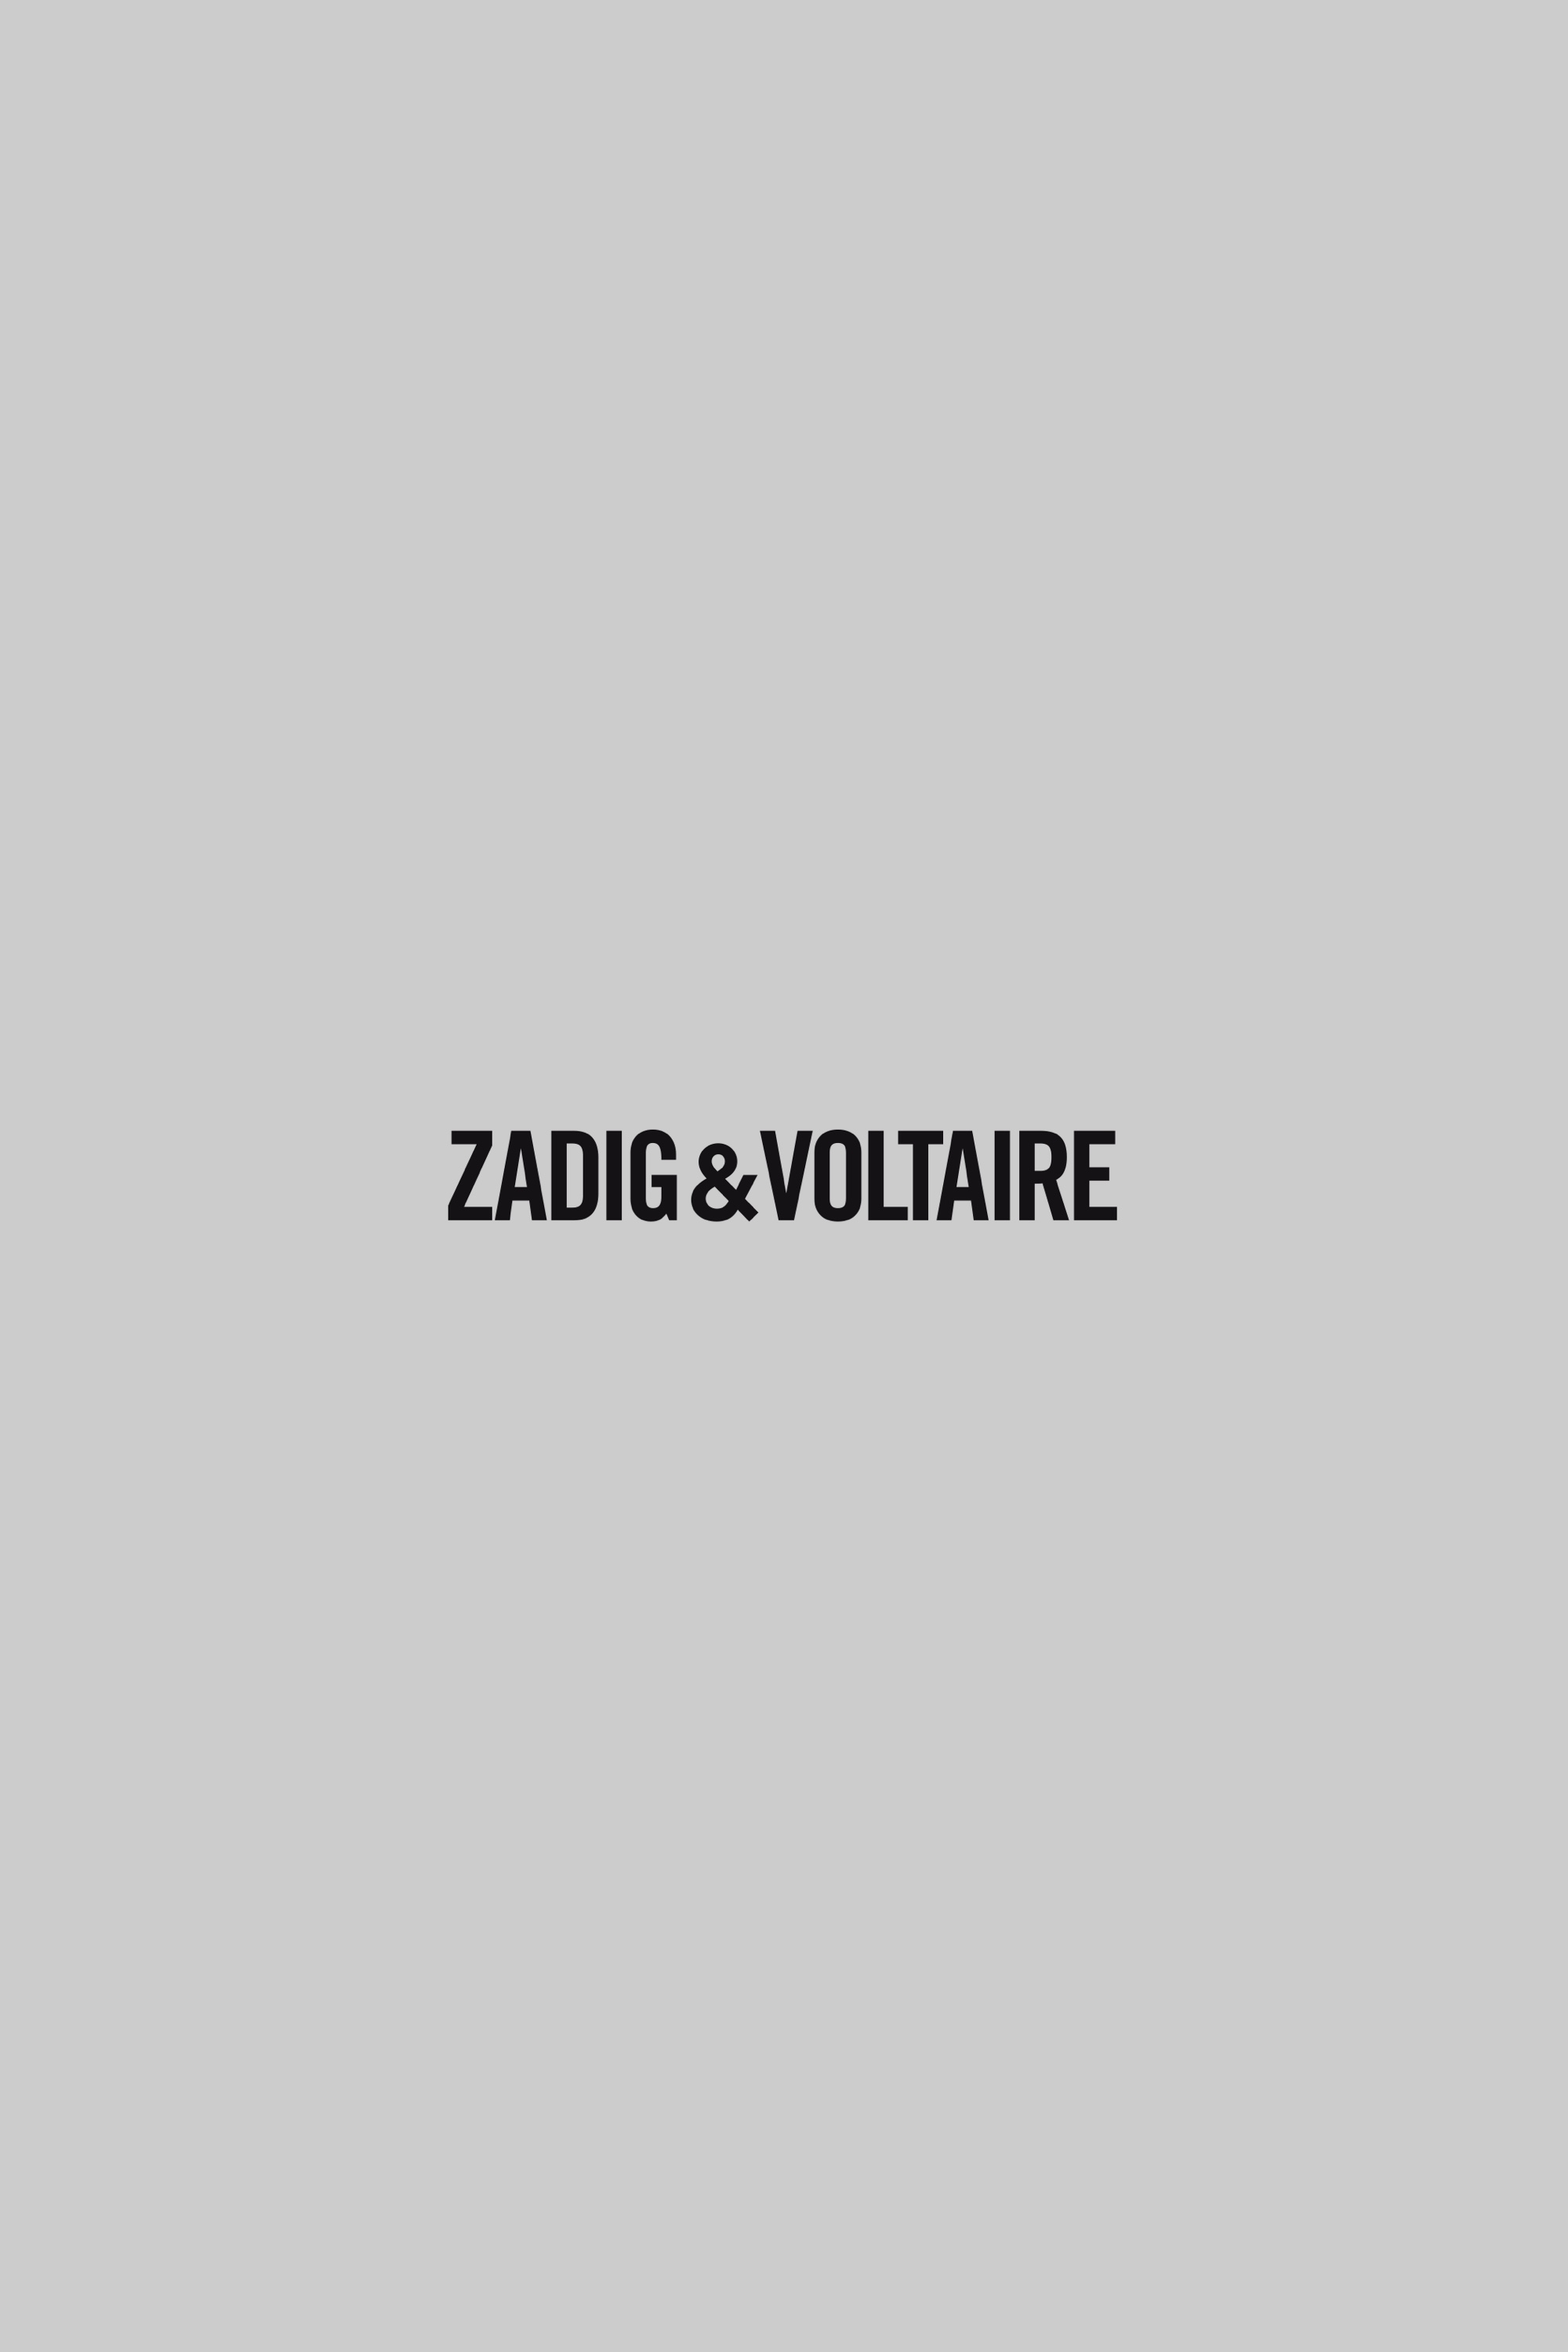 Zadig & Voltaire Hand Bag Classic Online Buy Cheap Inexpensive Exclusive Online Marketable MdHC84f